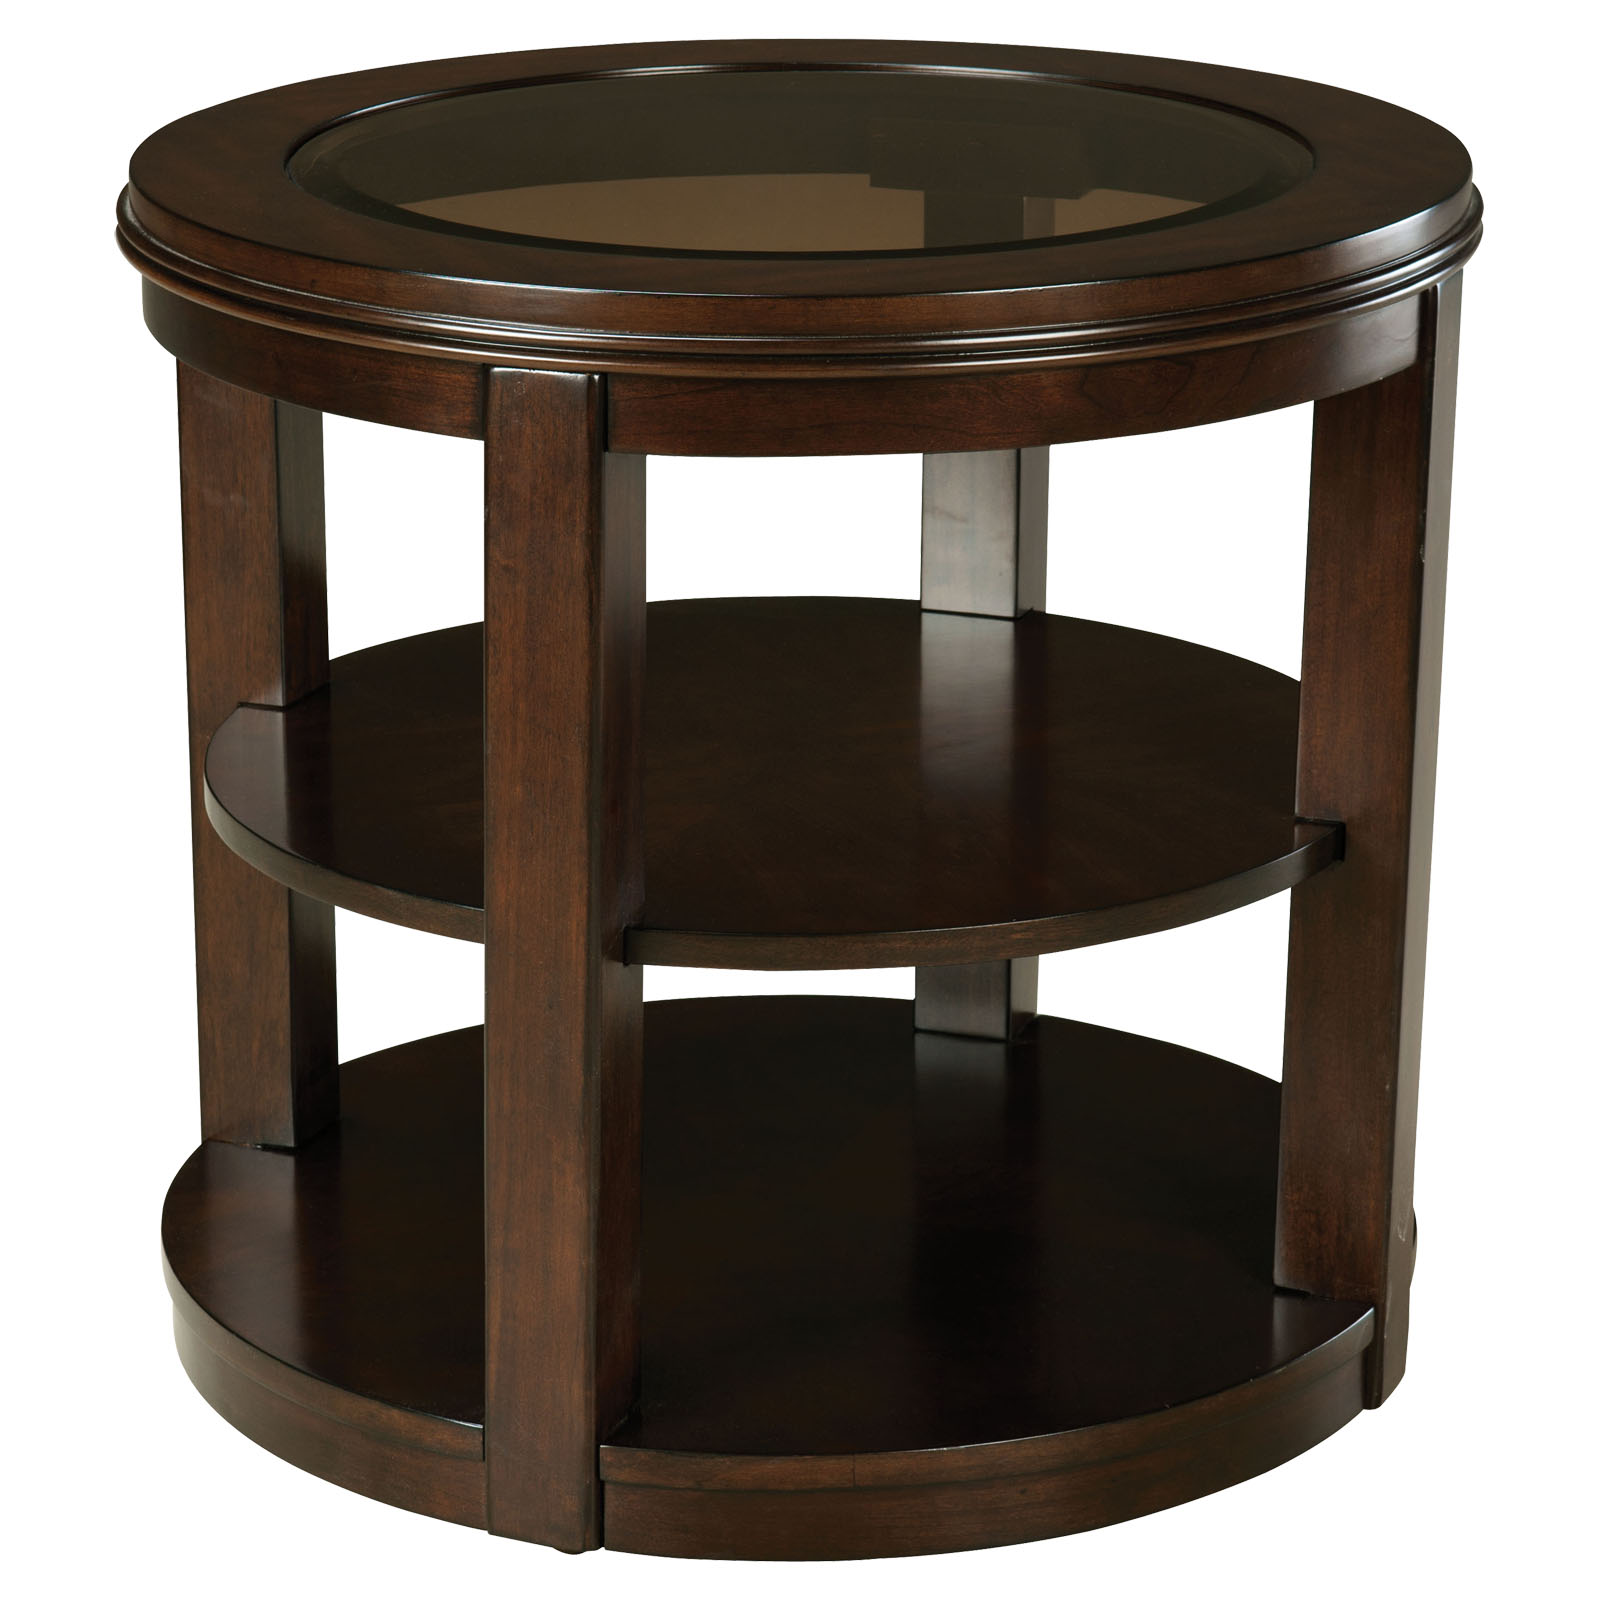 standard furniture spencer round wood and glass top end table end tables at hayneedle. Black Bedroom Furniture Sets. Home Design Ideas